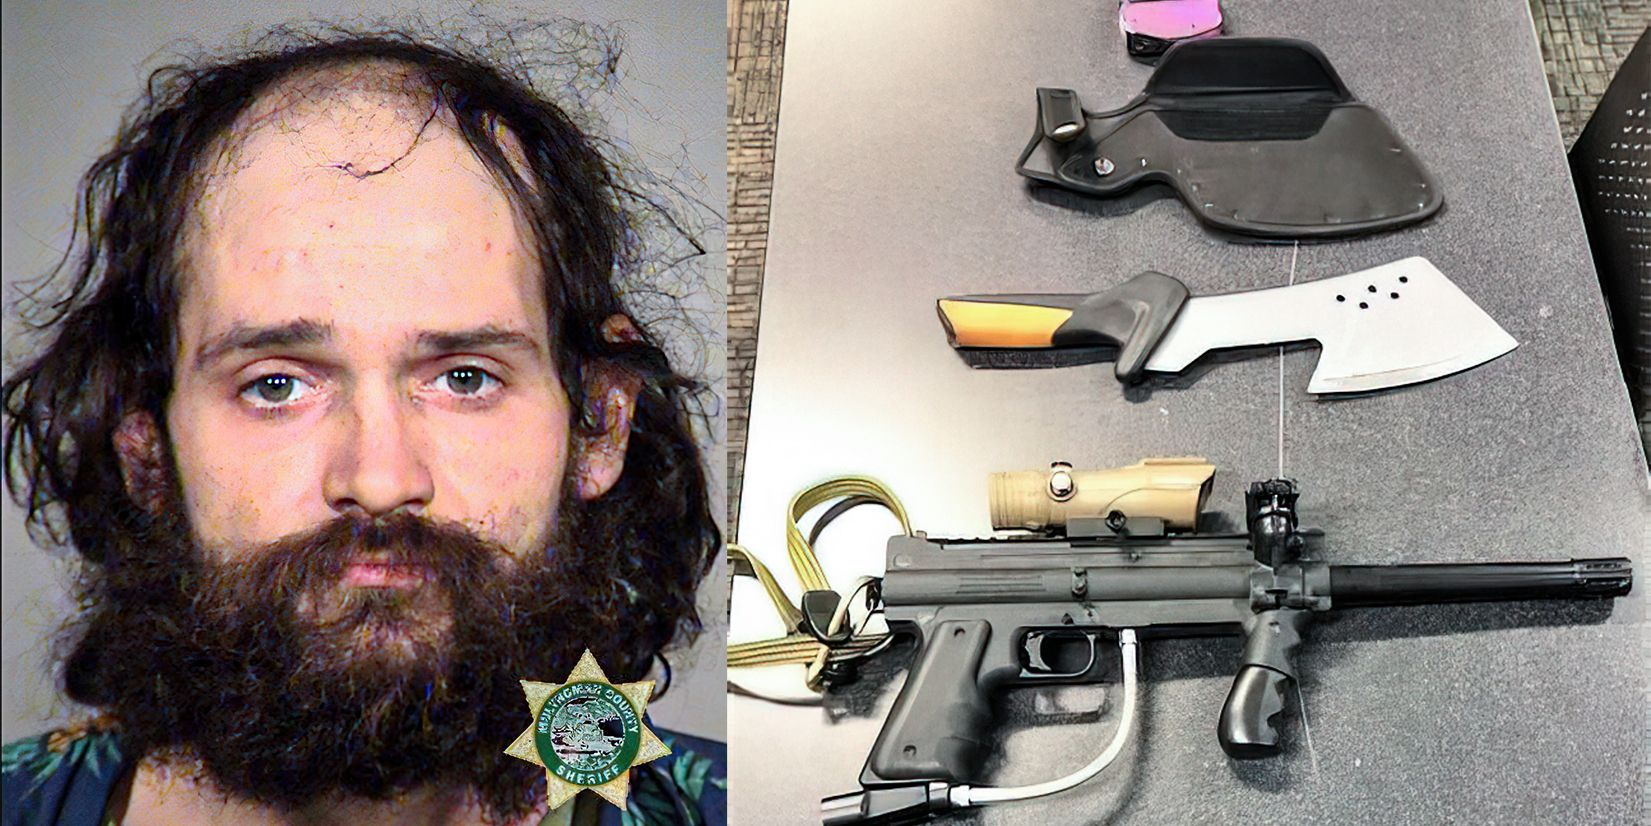 Axe-wielding Antifa protester arrested again